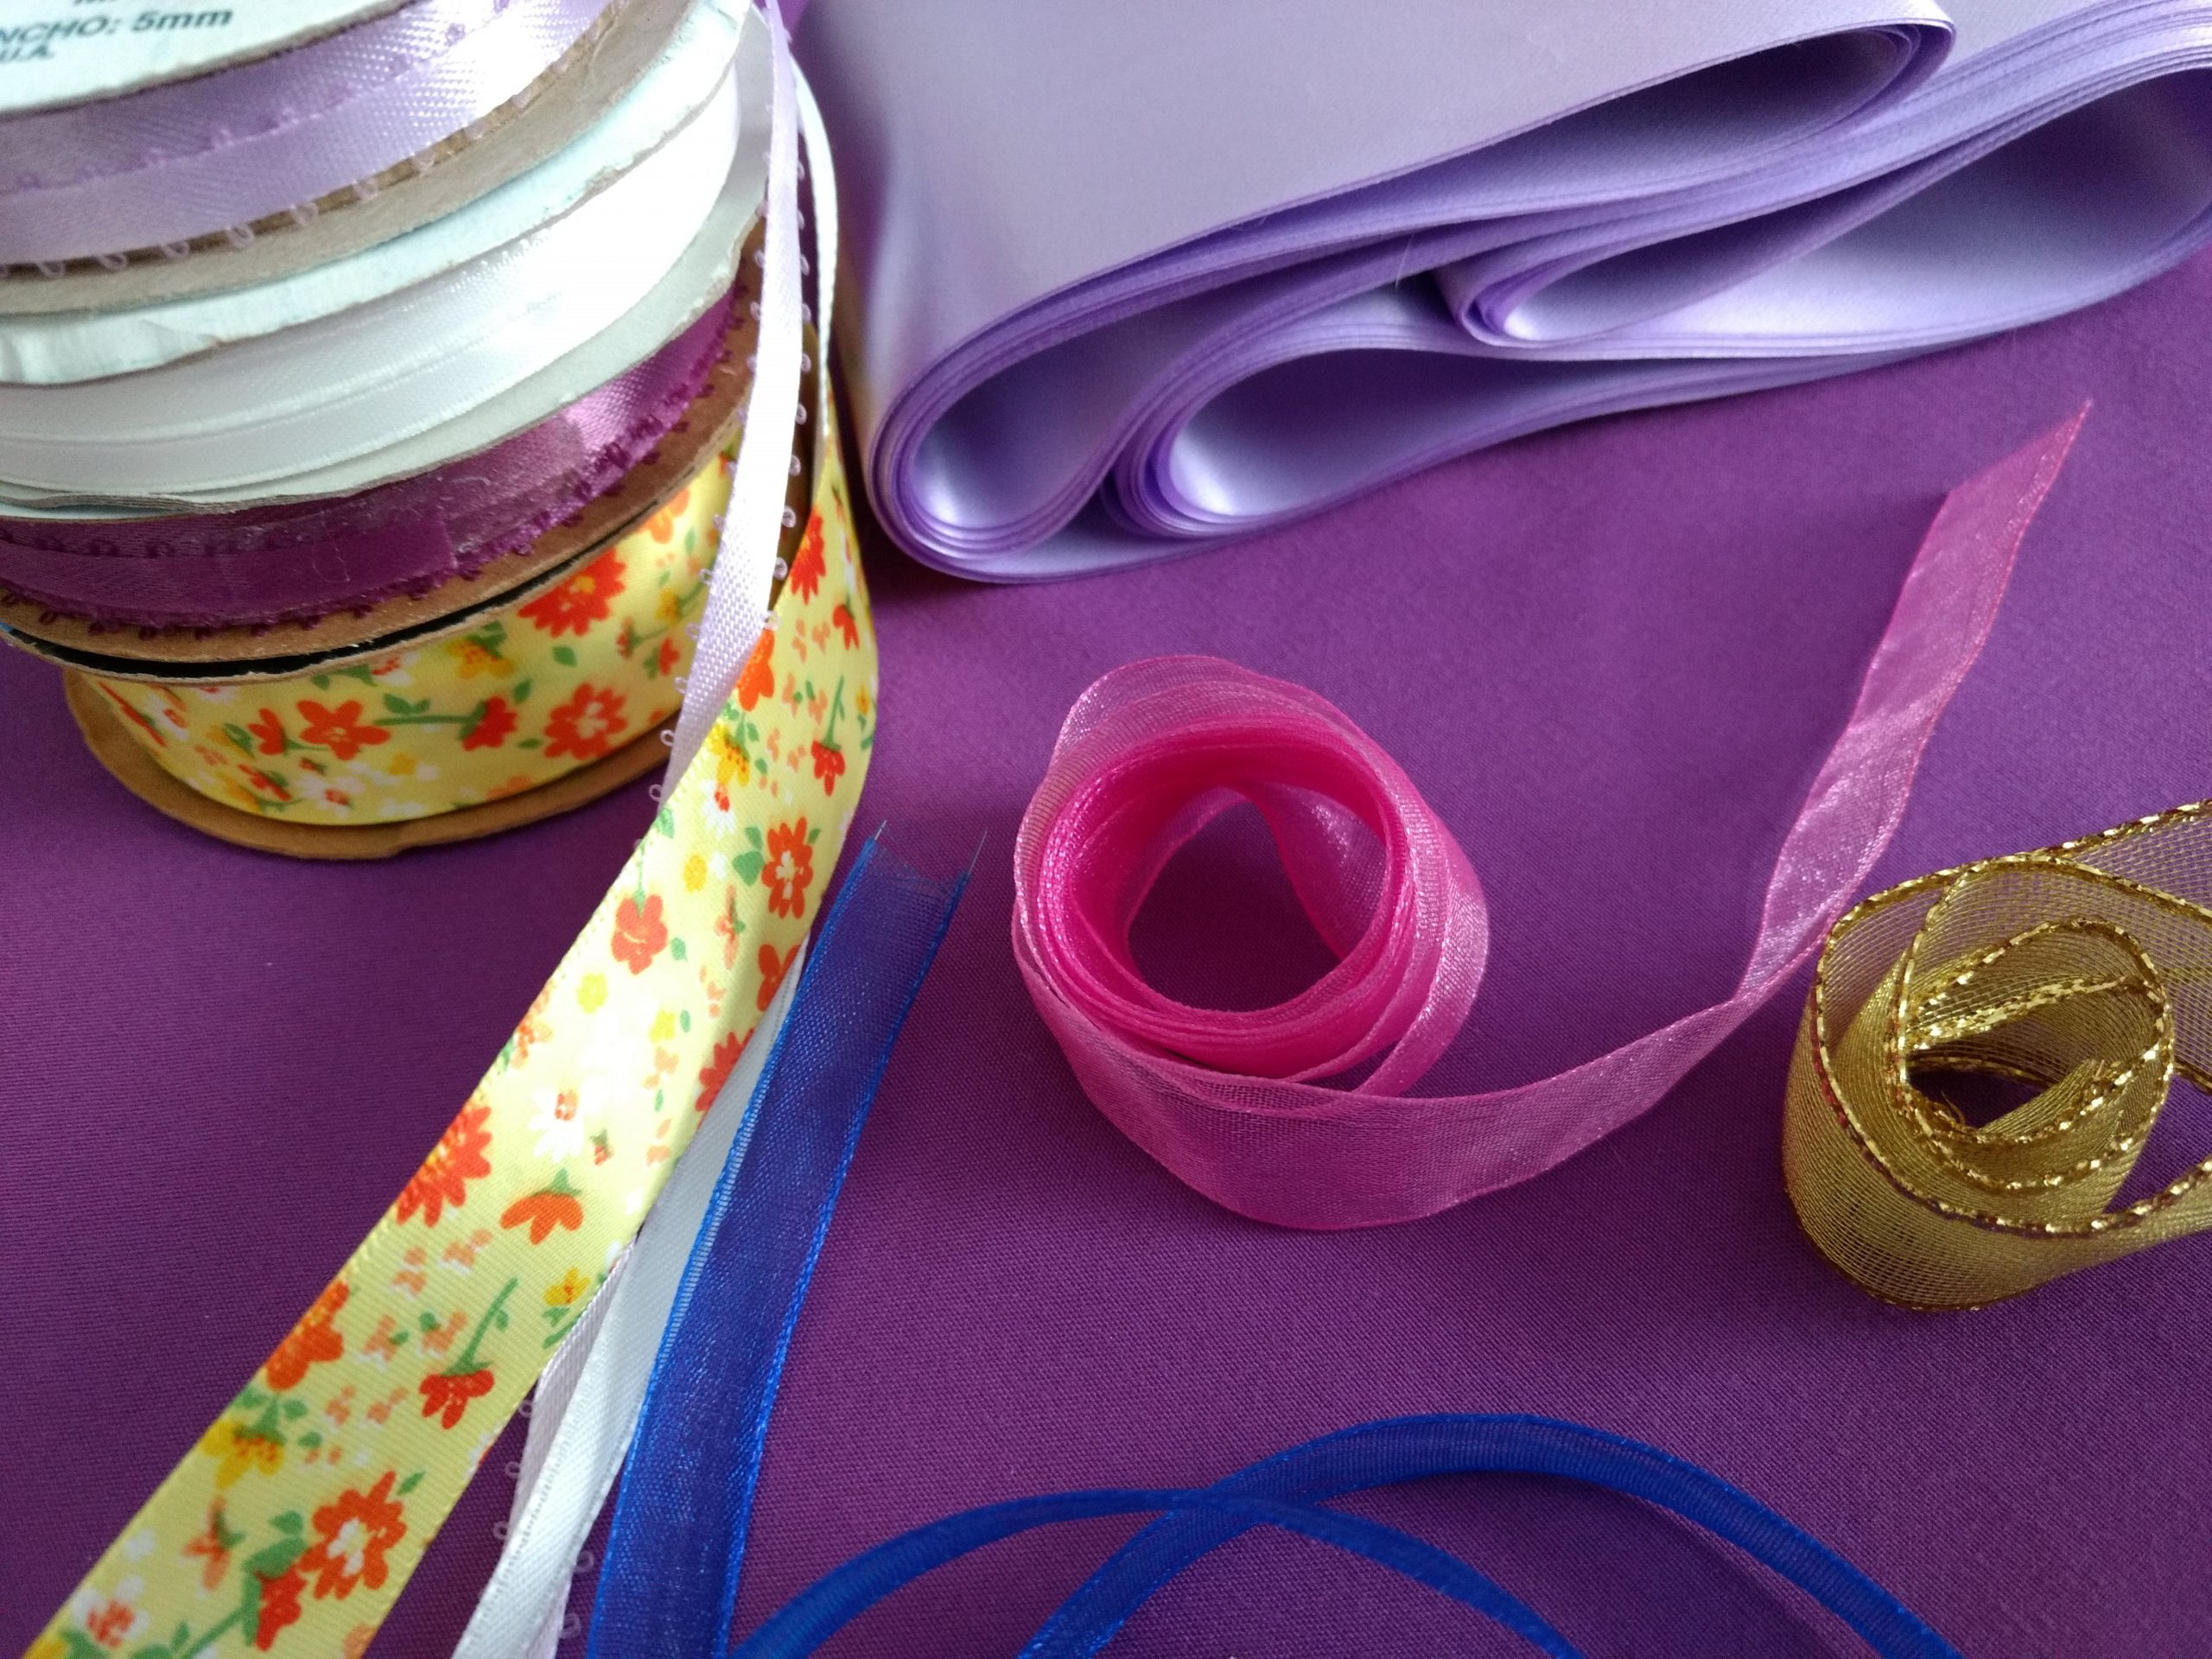 A white, purple, blue, gold, pink, and flowery ribbon roll along with a purple sheet, set against a purple background